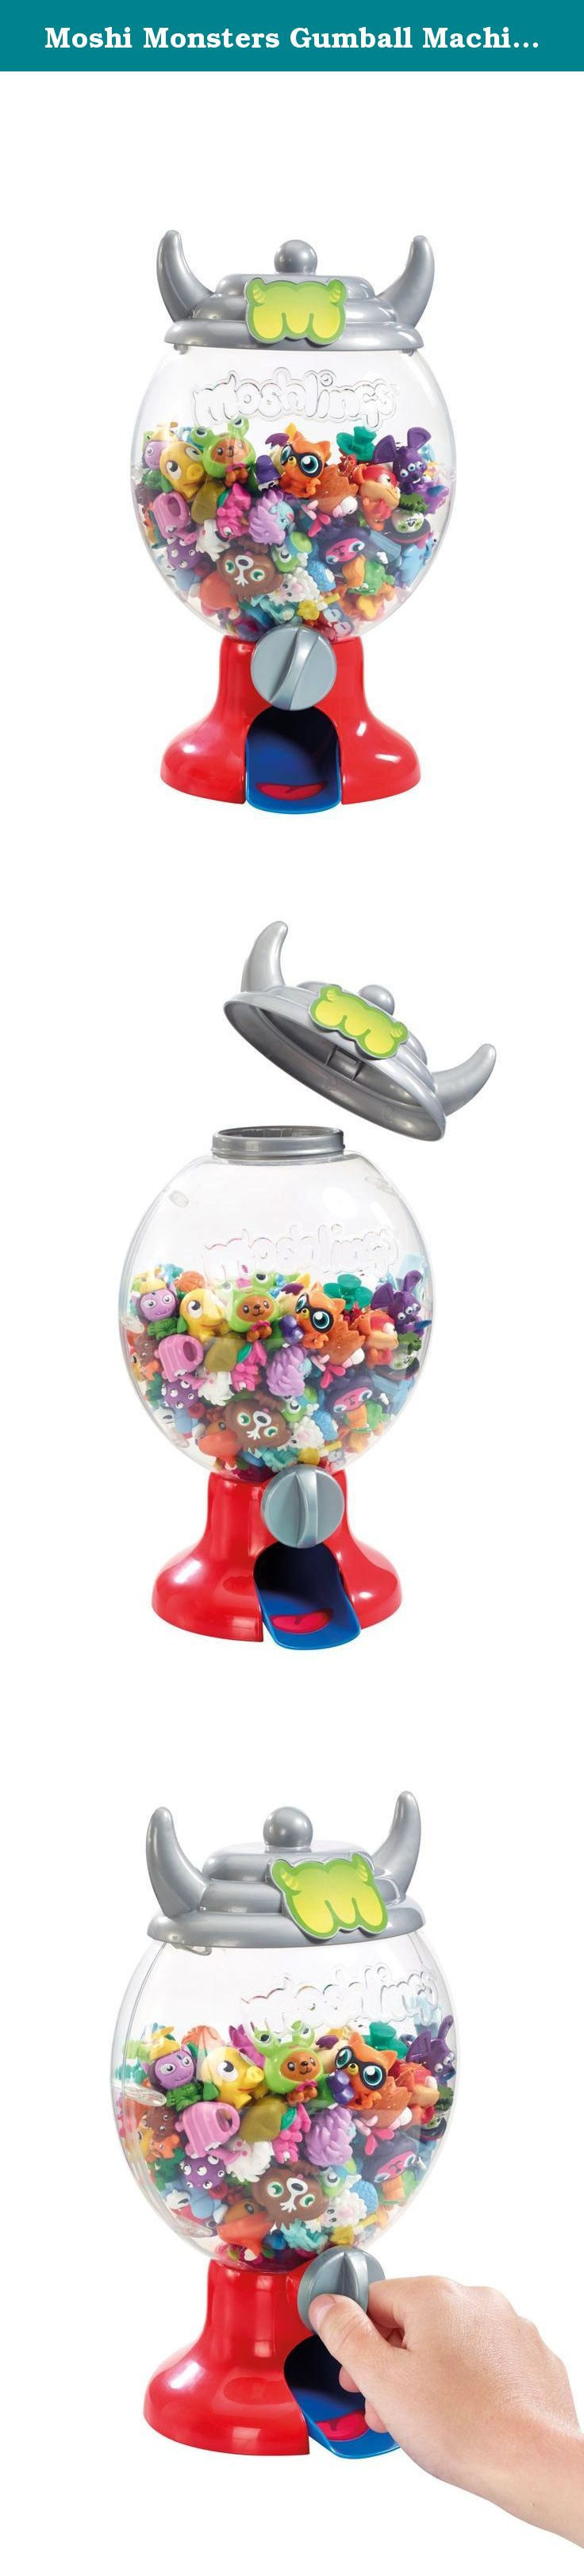 Moshi Monsters Gumball Machine *INCLUDES EXCLUSIVE